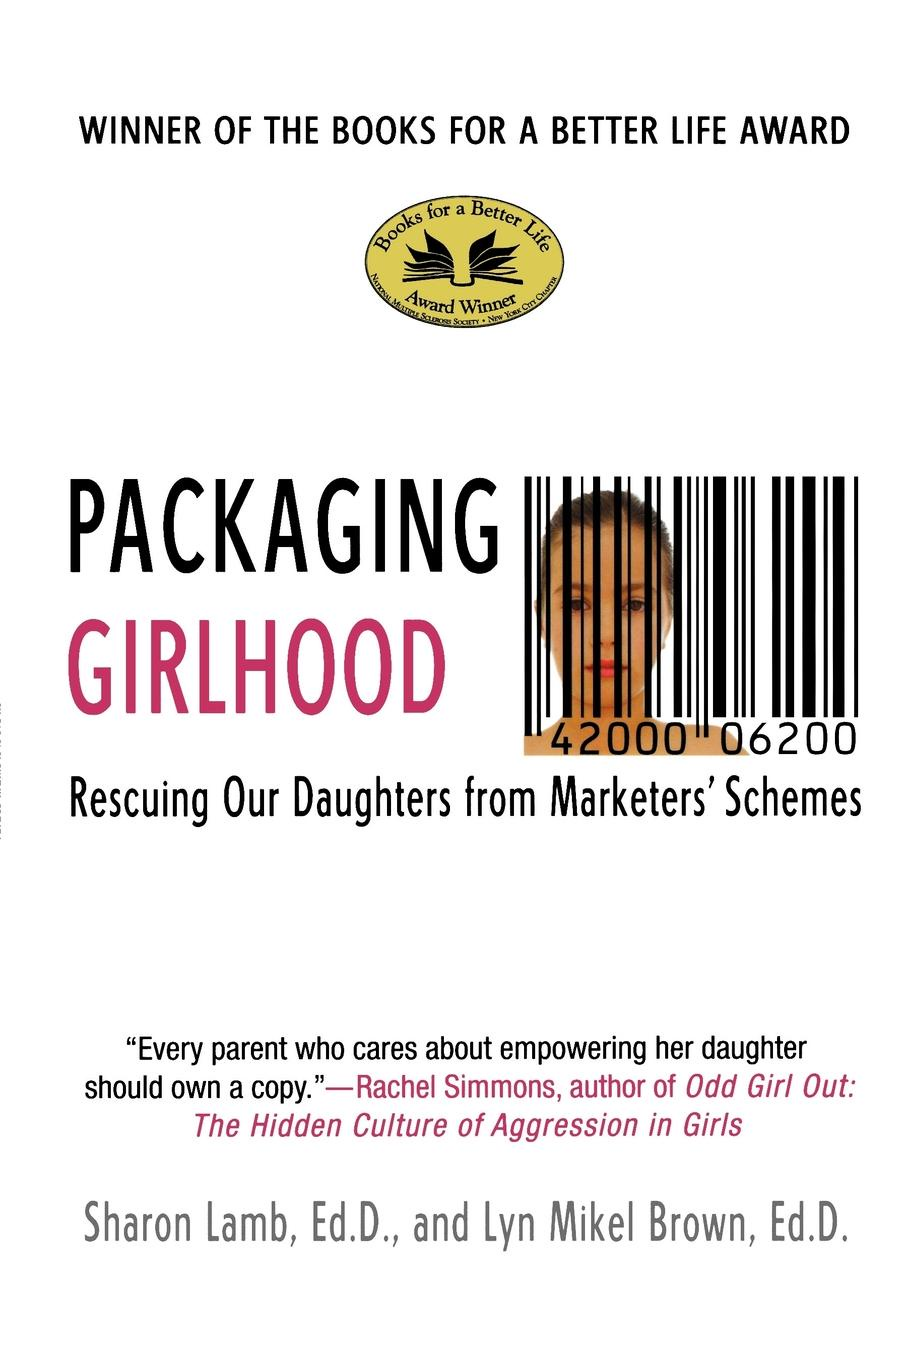 Sharon Lamb, Lyn Mikel Brown Packaging Girlhood. Rescuing Our Daughters from Marketers' Schemes unique packaging